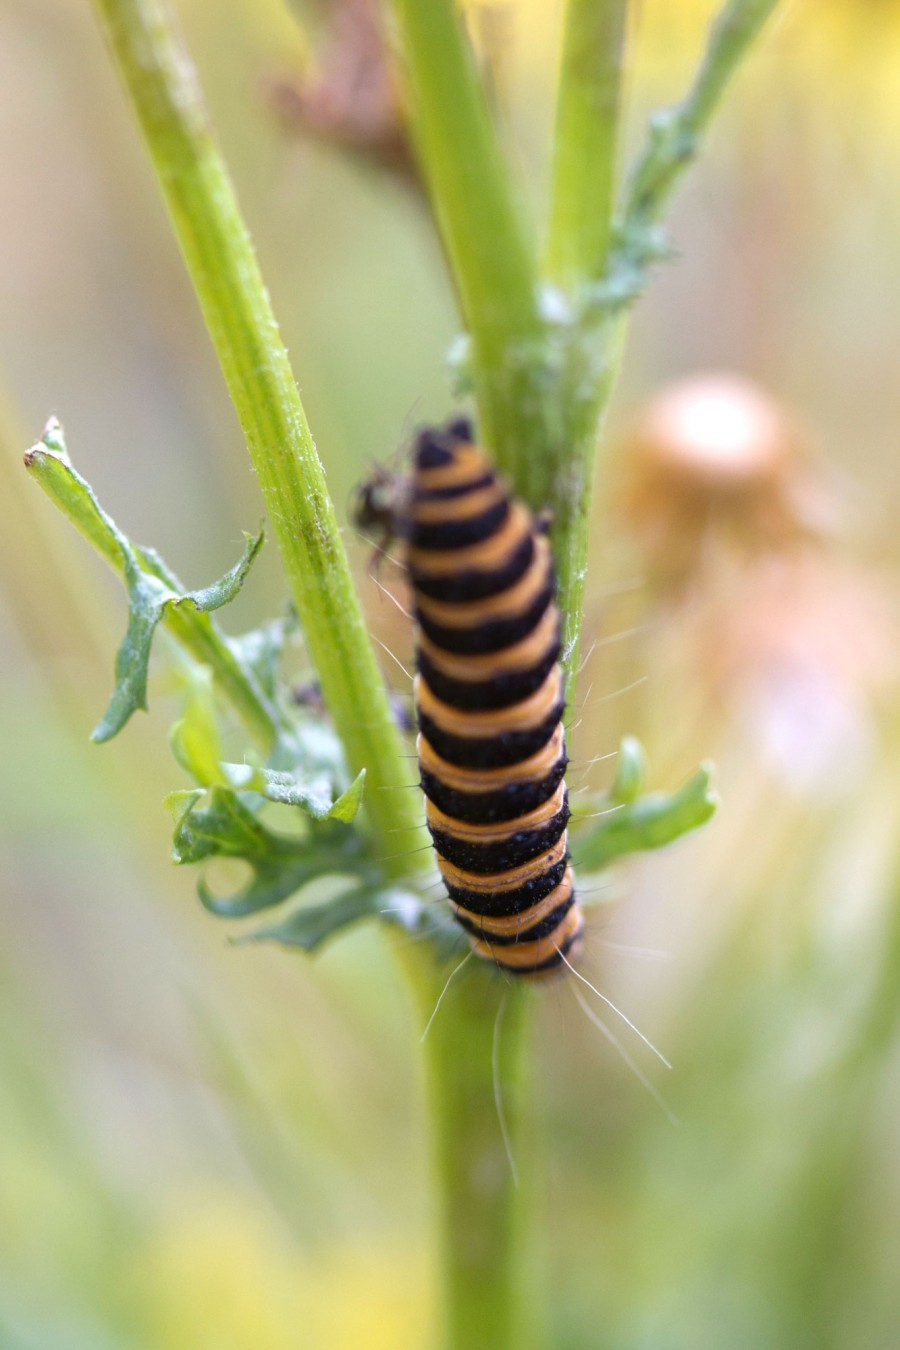 The keen eyed might spot caterpillars around the farm, like this larval Cinnabar moth.